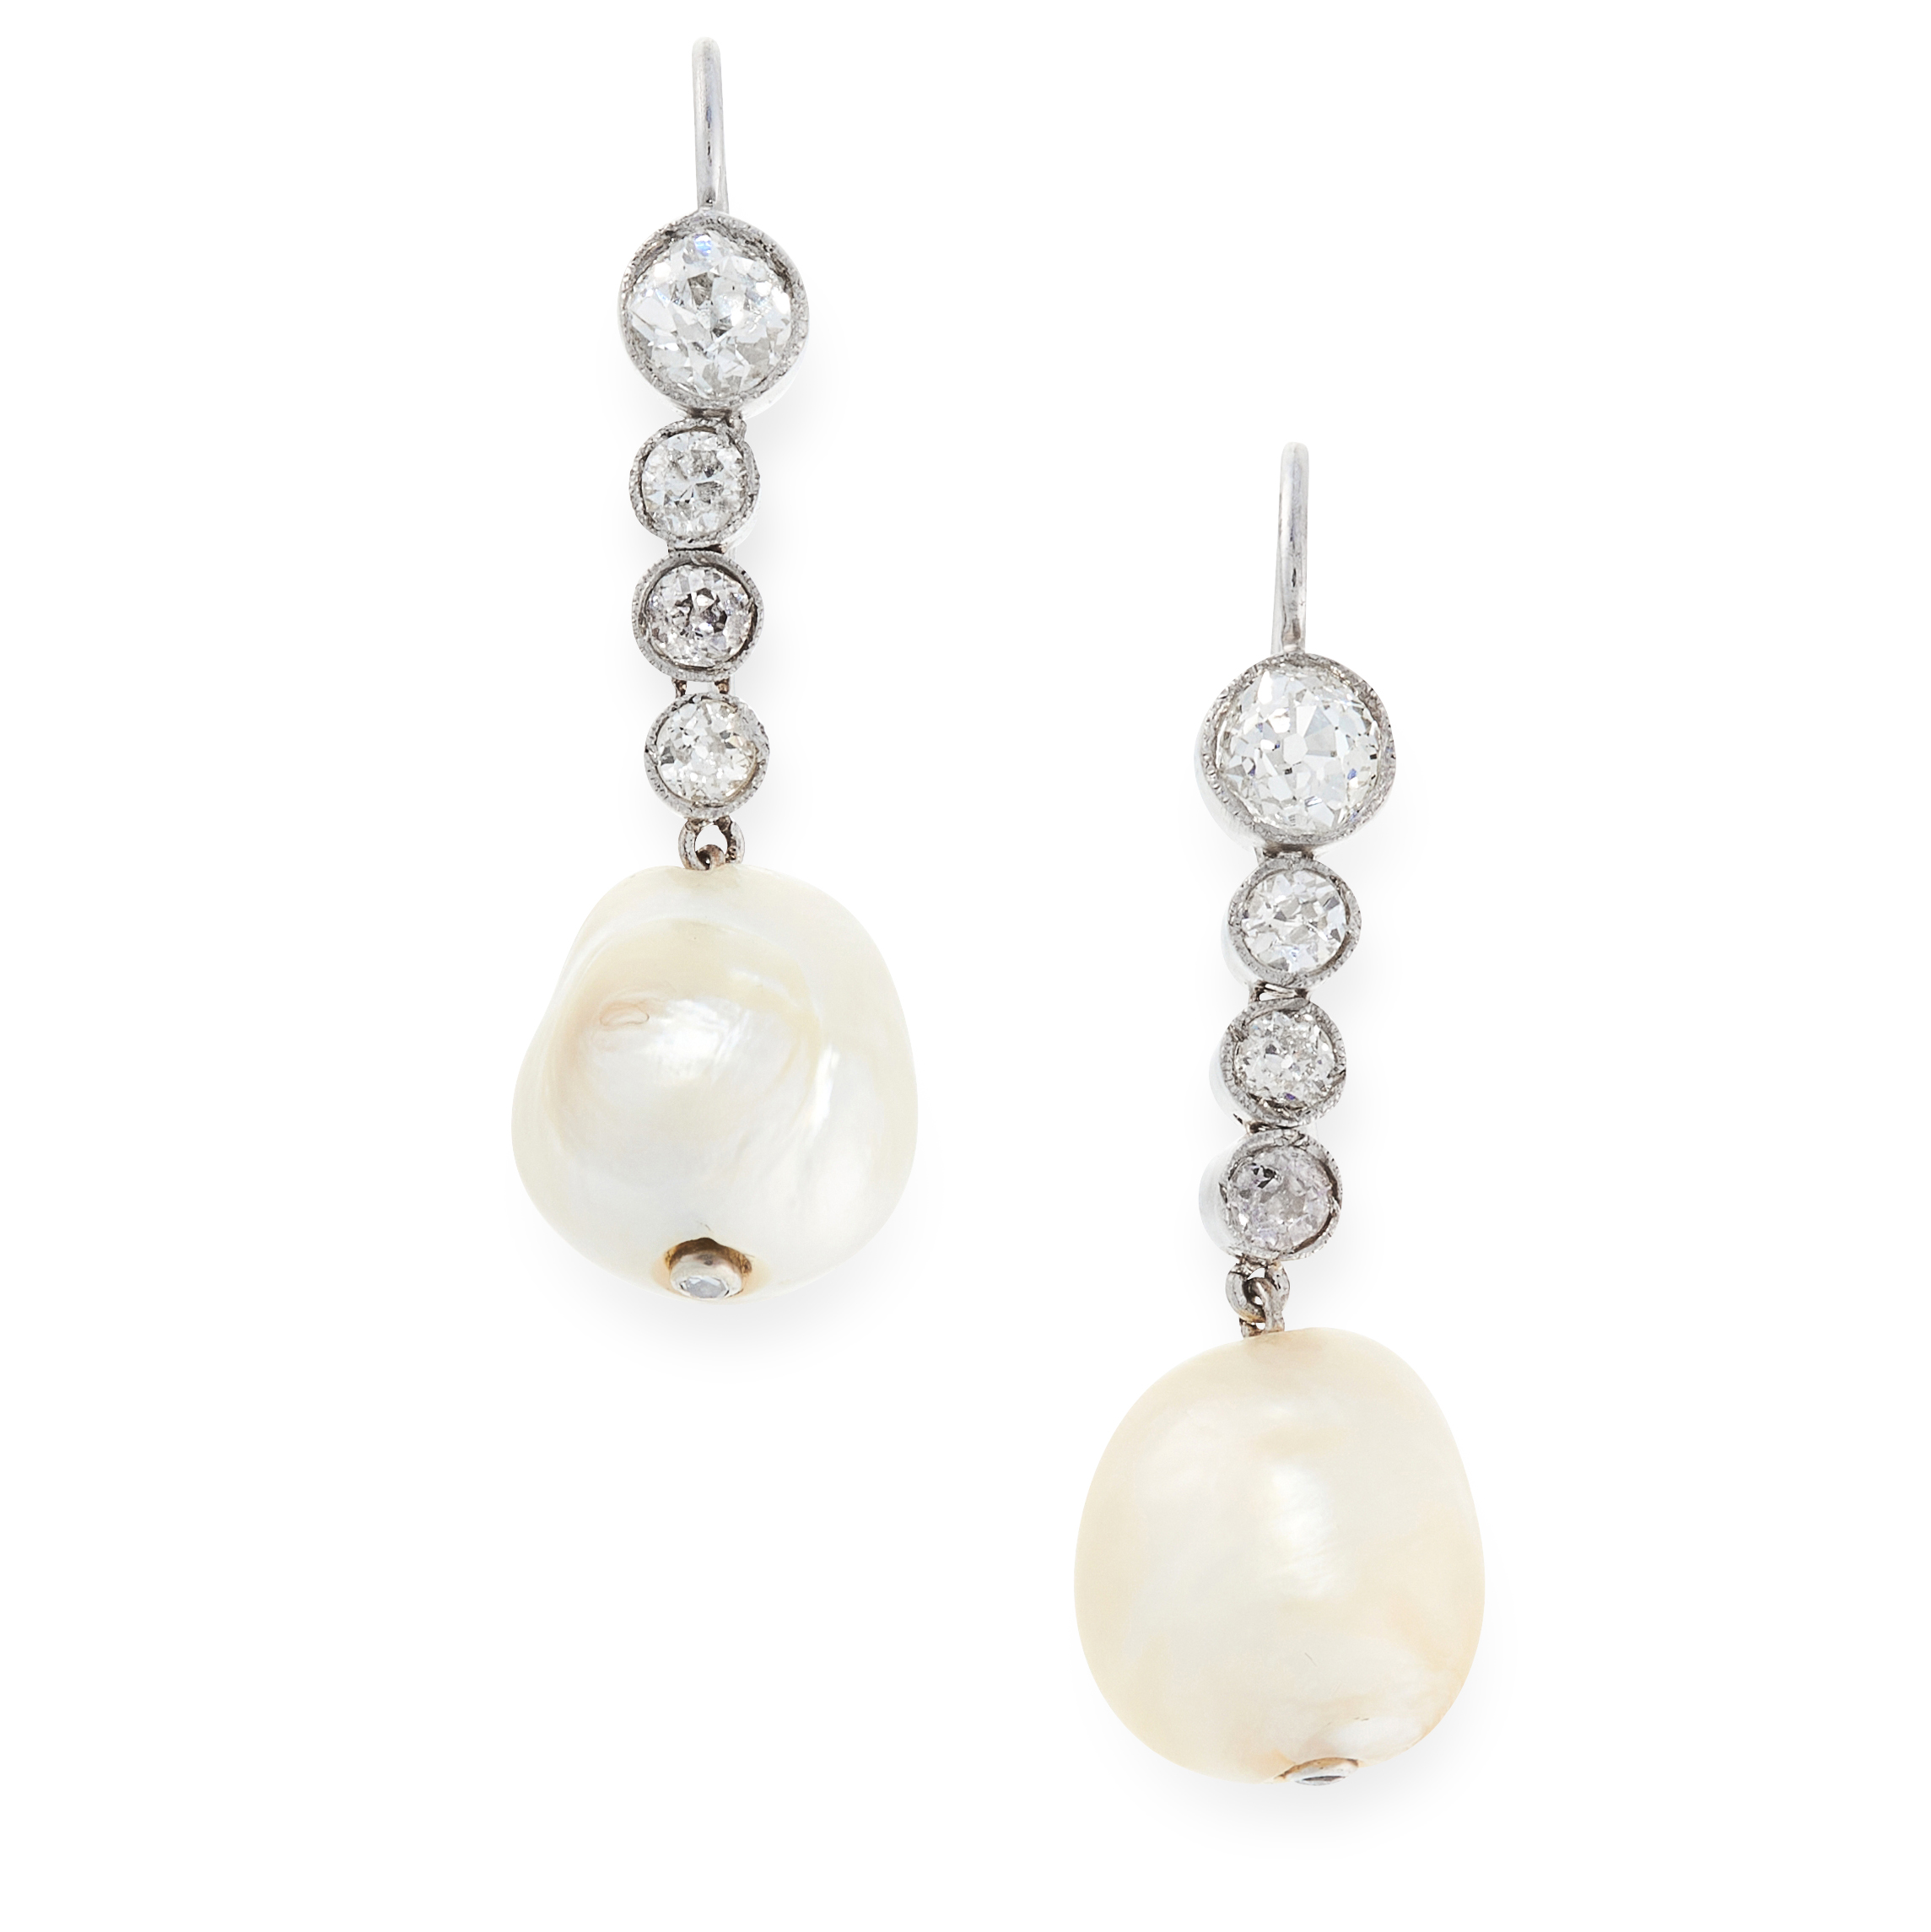 A PAIR OF ART DECO NATURAL PEARL AND DIAMOND EARRINGS each set with a natural pearl of 11.4mm and